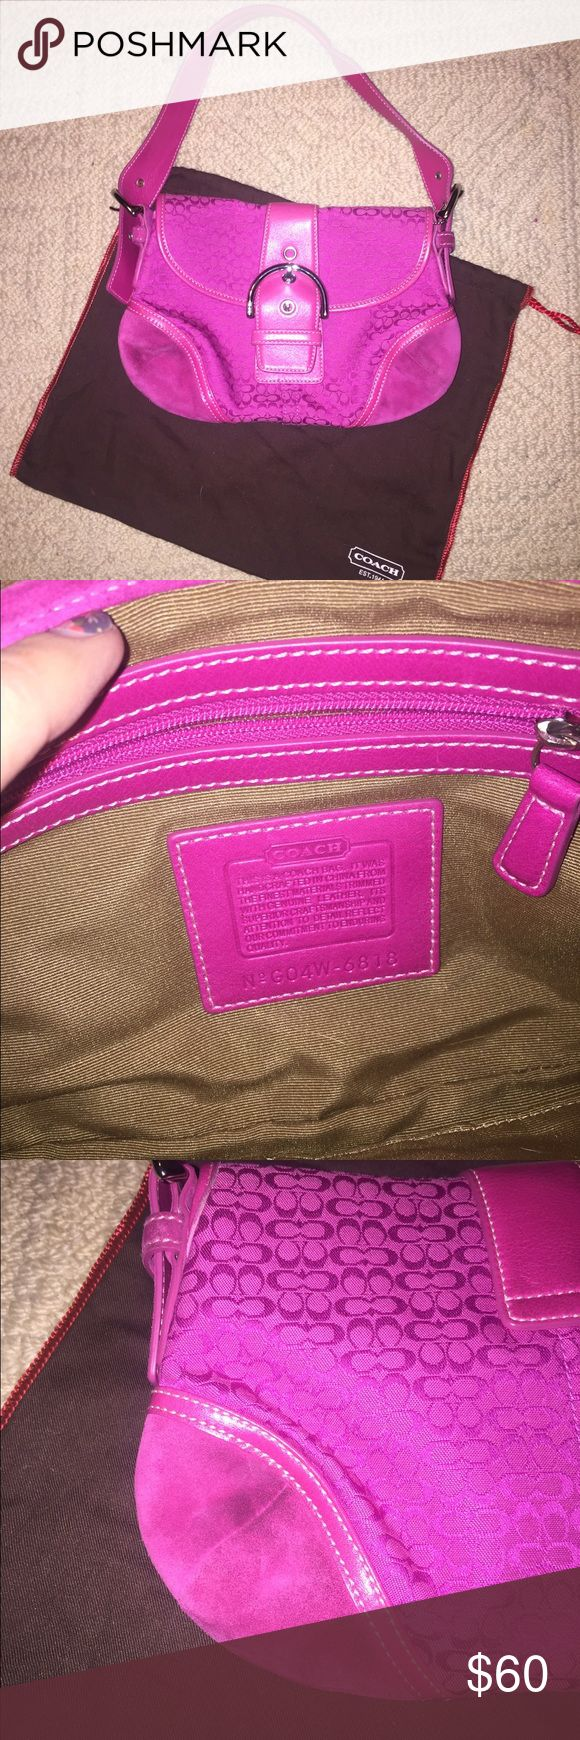 Coach Hobo Bag ⭐️FIRM⭐️ ⭐️HOT⭐️ EUC Authentic Hobo. Hot pink in color. No rips, stains or markings in interior. Corner suede/leather sections on exterior can be cleaned. Comes with original dust bag. 🚫No trades. 🚫Low balls. Has tons of life. Downsizing collection. Smoke free home. FIRM on price Coach Bags Hobos